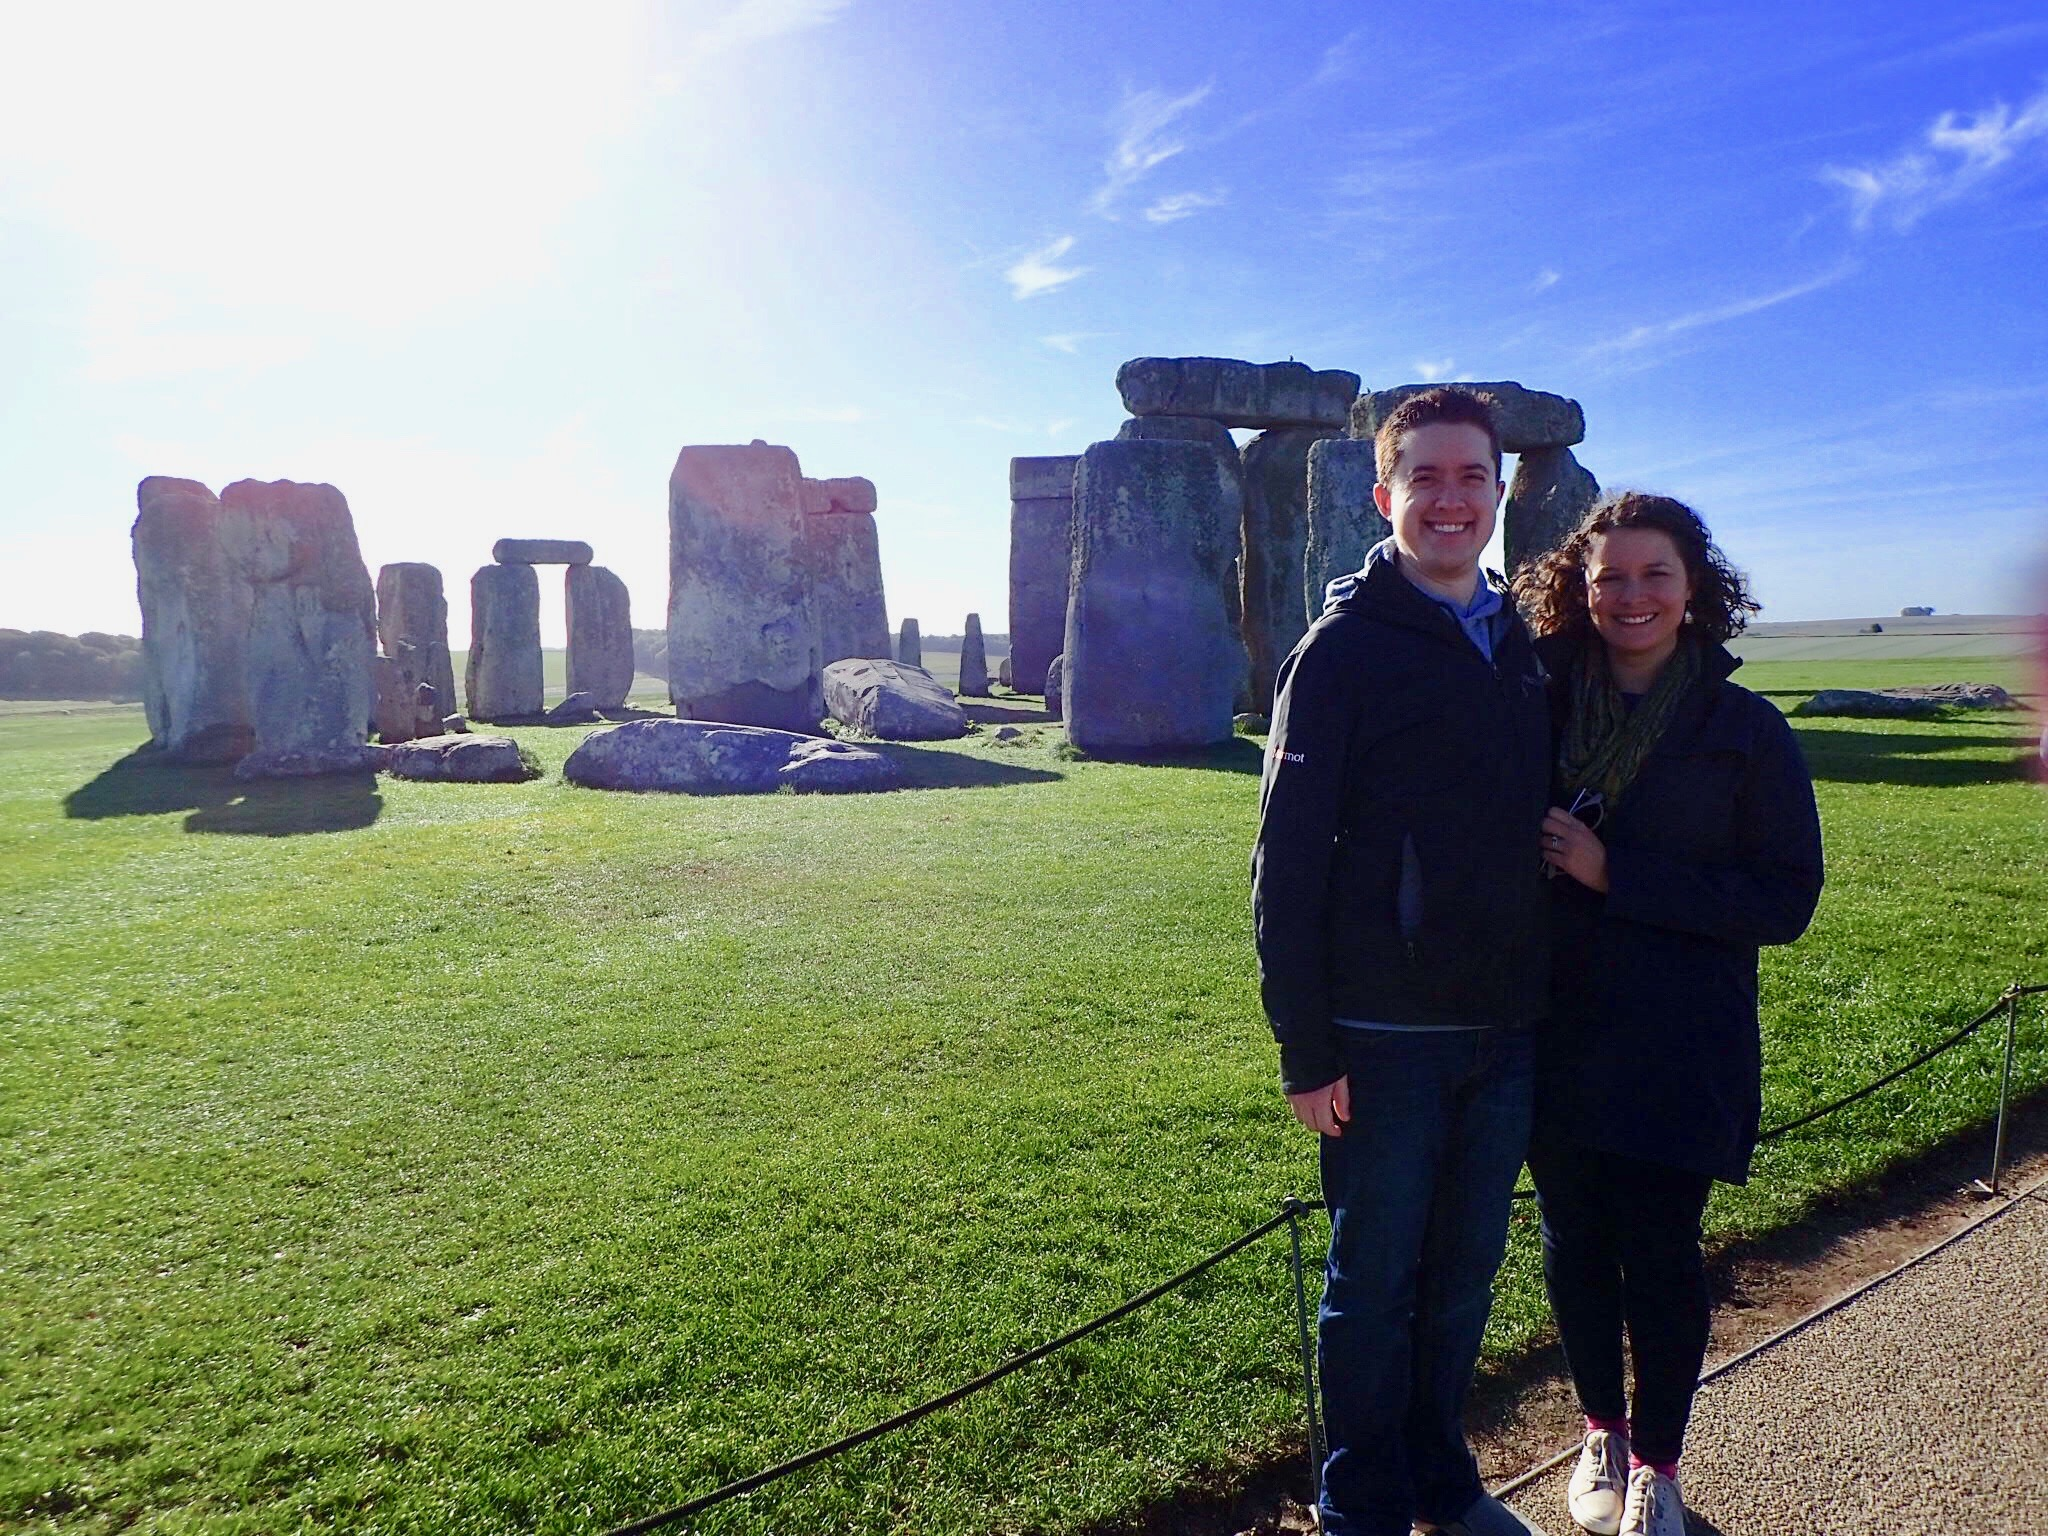 Gregory and his wife, Kathryn, at Stonehenge